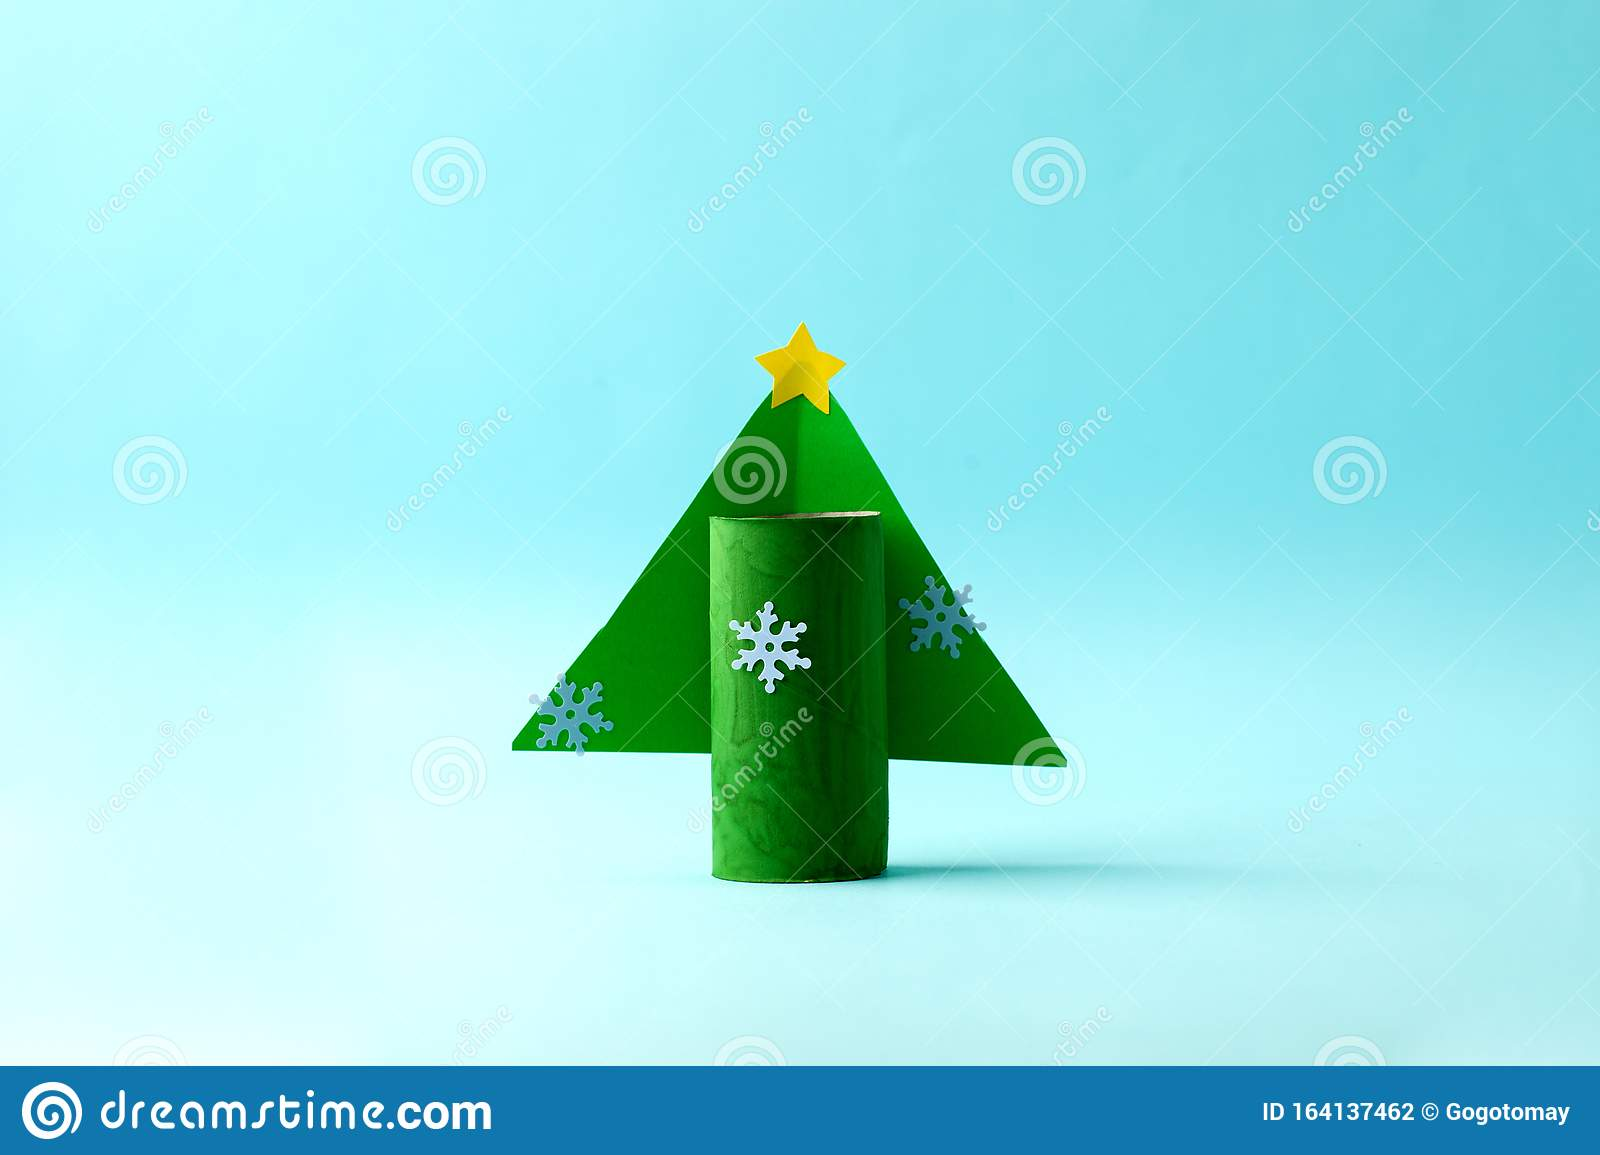 Paper Christmas Tree For Happy New Year Merry Christmas Party Easy Craft For Kids On Blue Background Simple Diy Idea From Toilet Stock Photo Image Of Child Happy 164137462